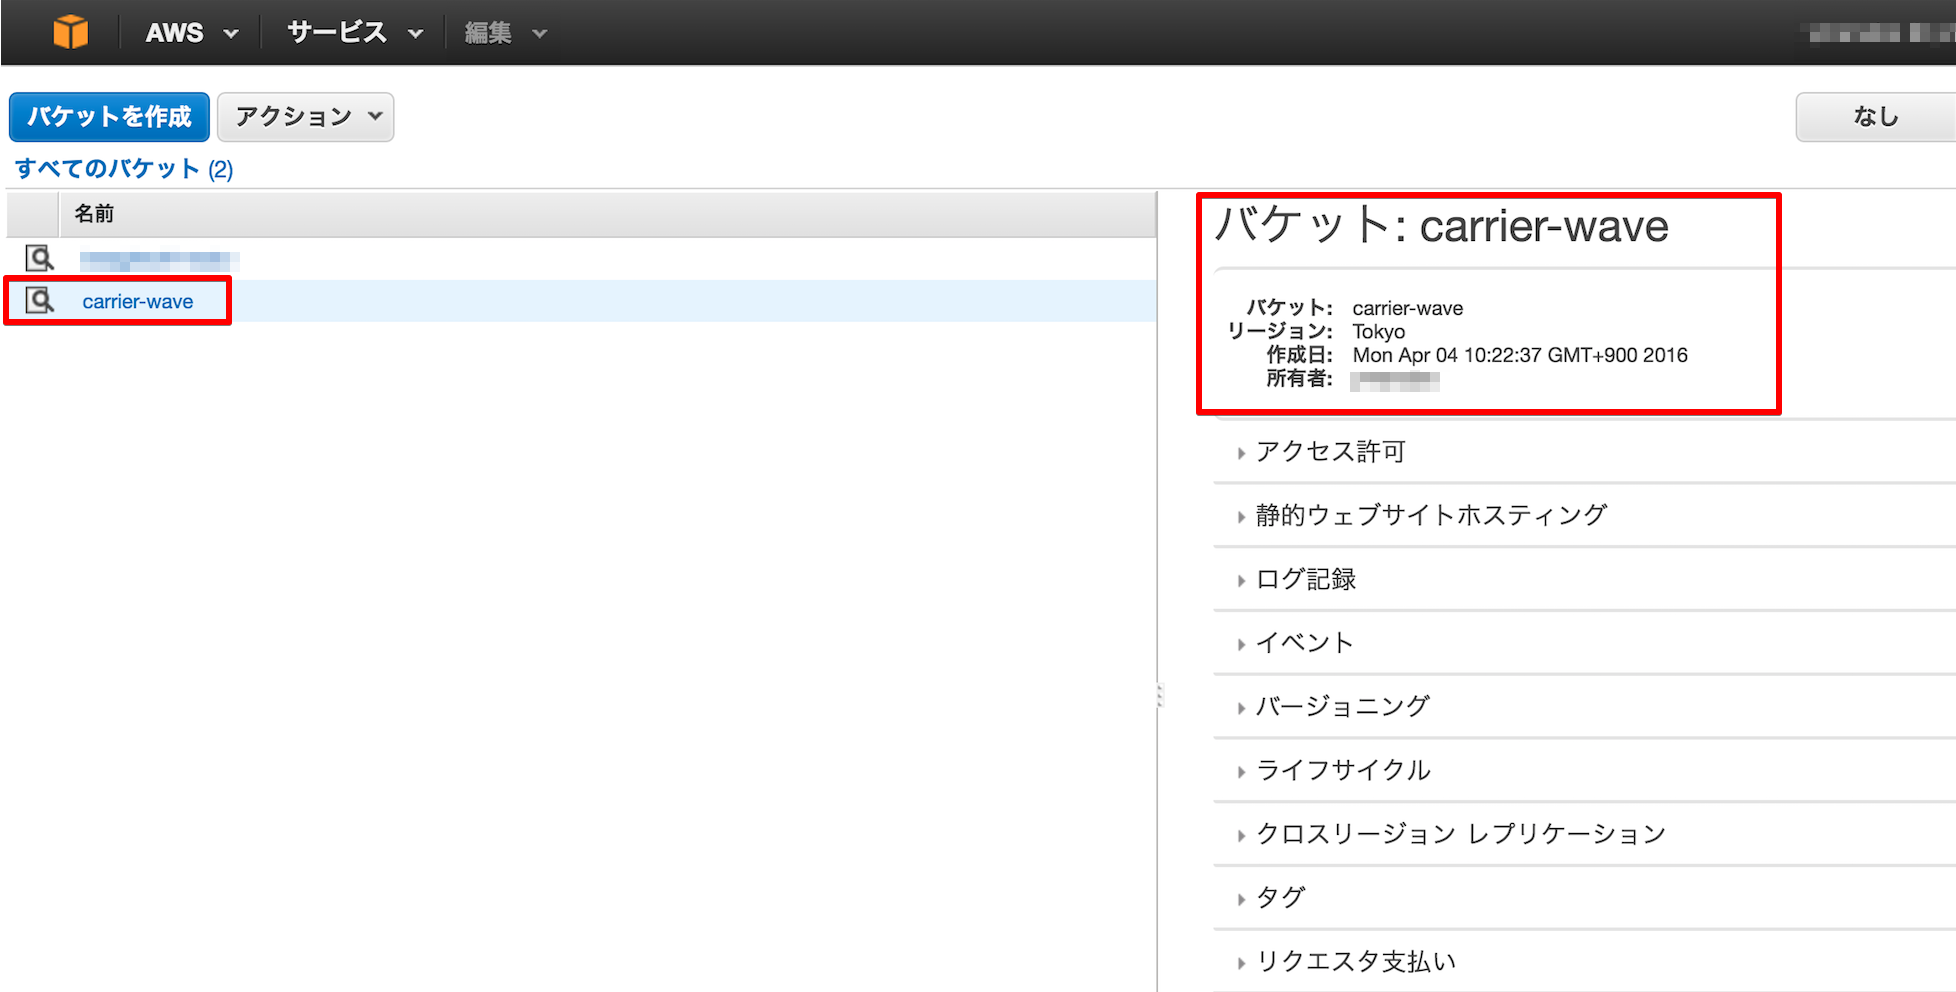 screencapture-console-aws-amazon-com-s3-home-1459732967822.png 2016-04-04 10-23-55.png (238.4 kB)